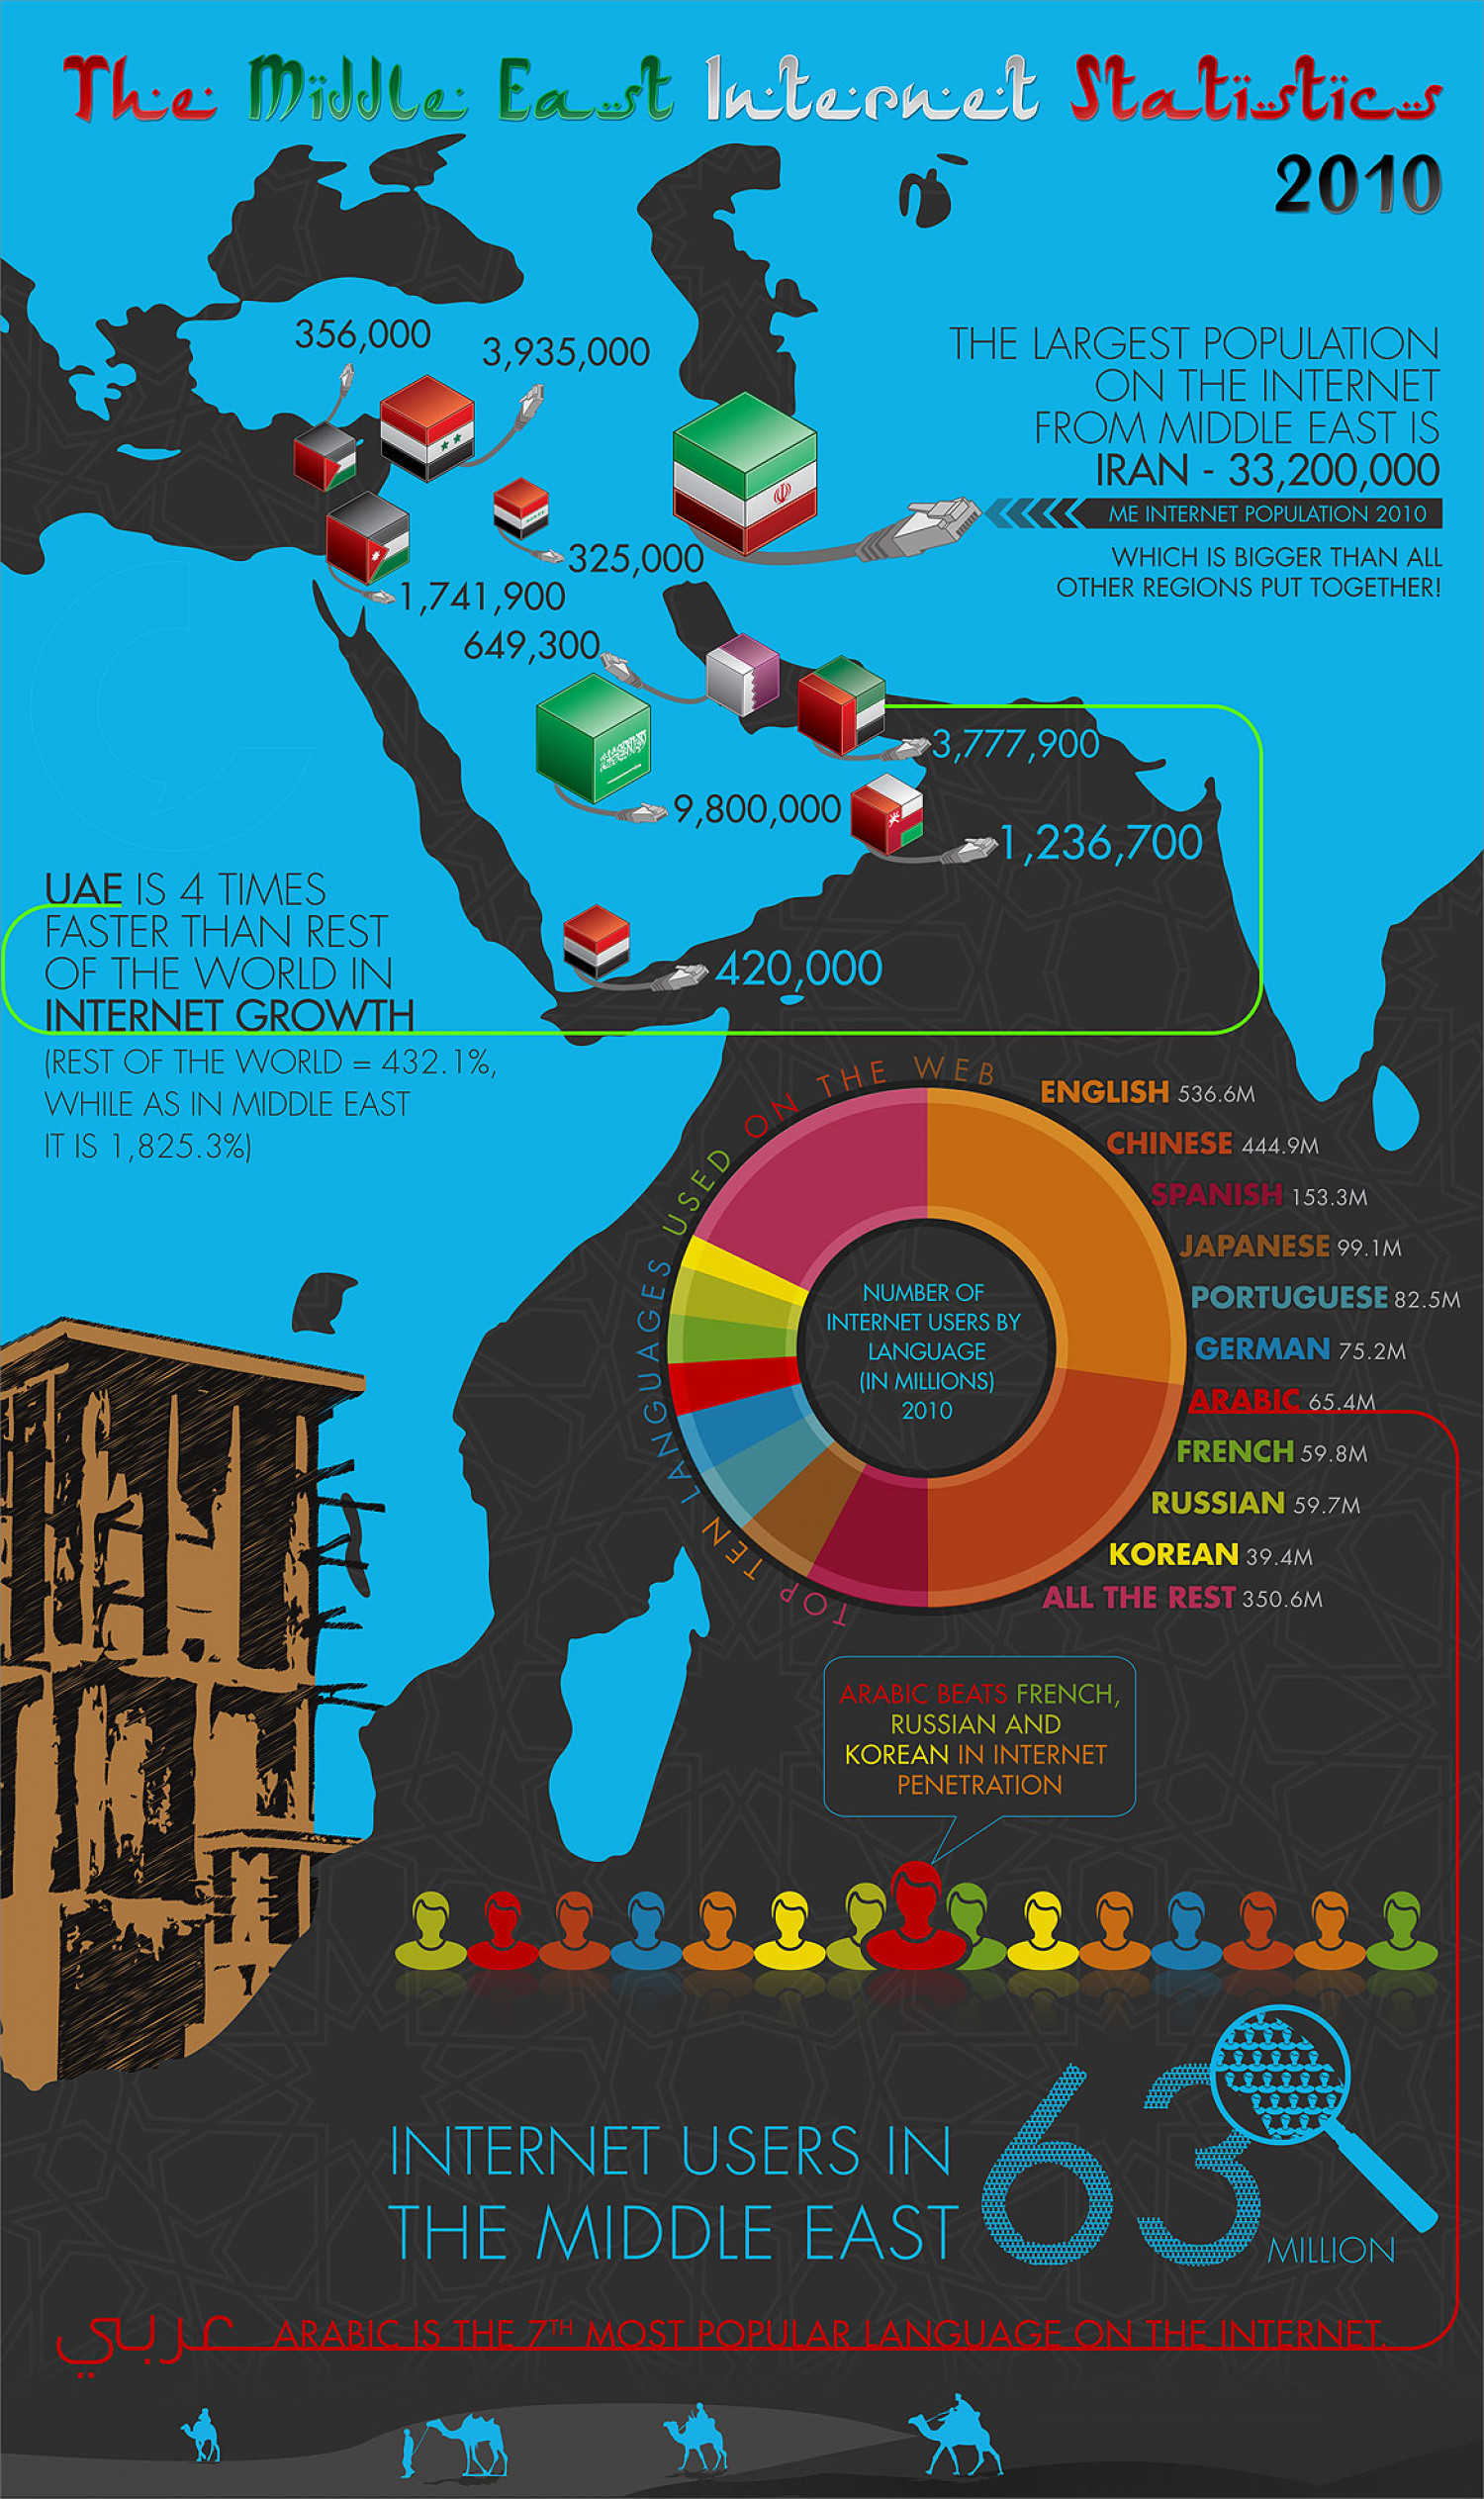 The Middle East Internet Statistics 2010 Infographic